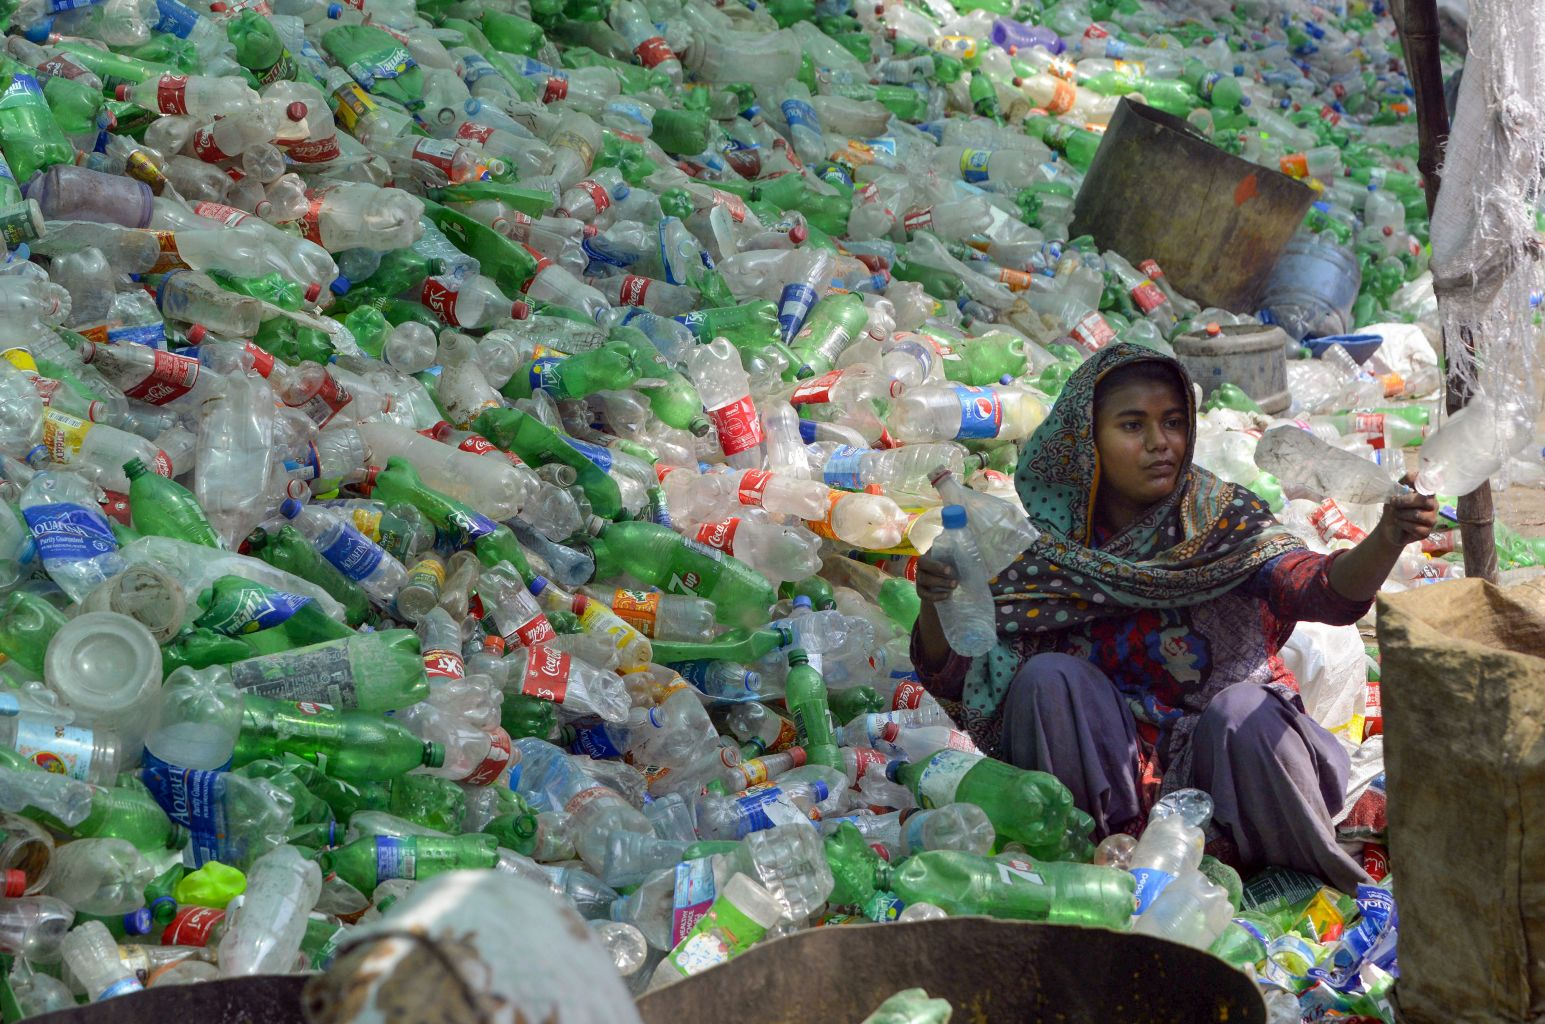 A Pakistani worker sorts plastic bottles at a warehouse in Lahore on May 10. ARIF ALI/AFP/Getty Images